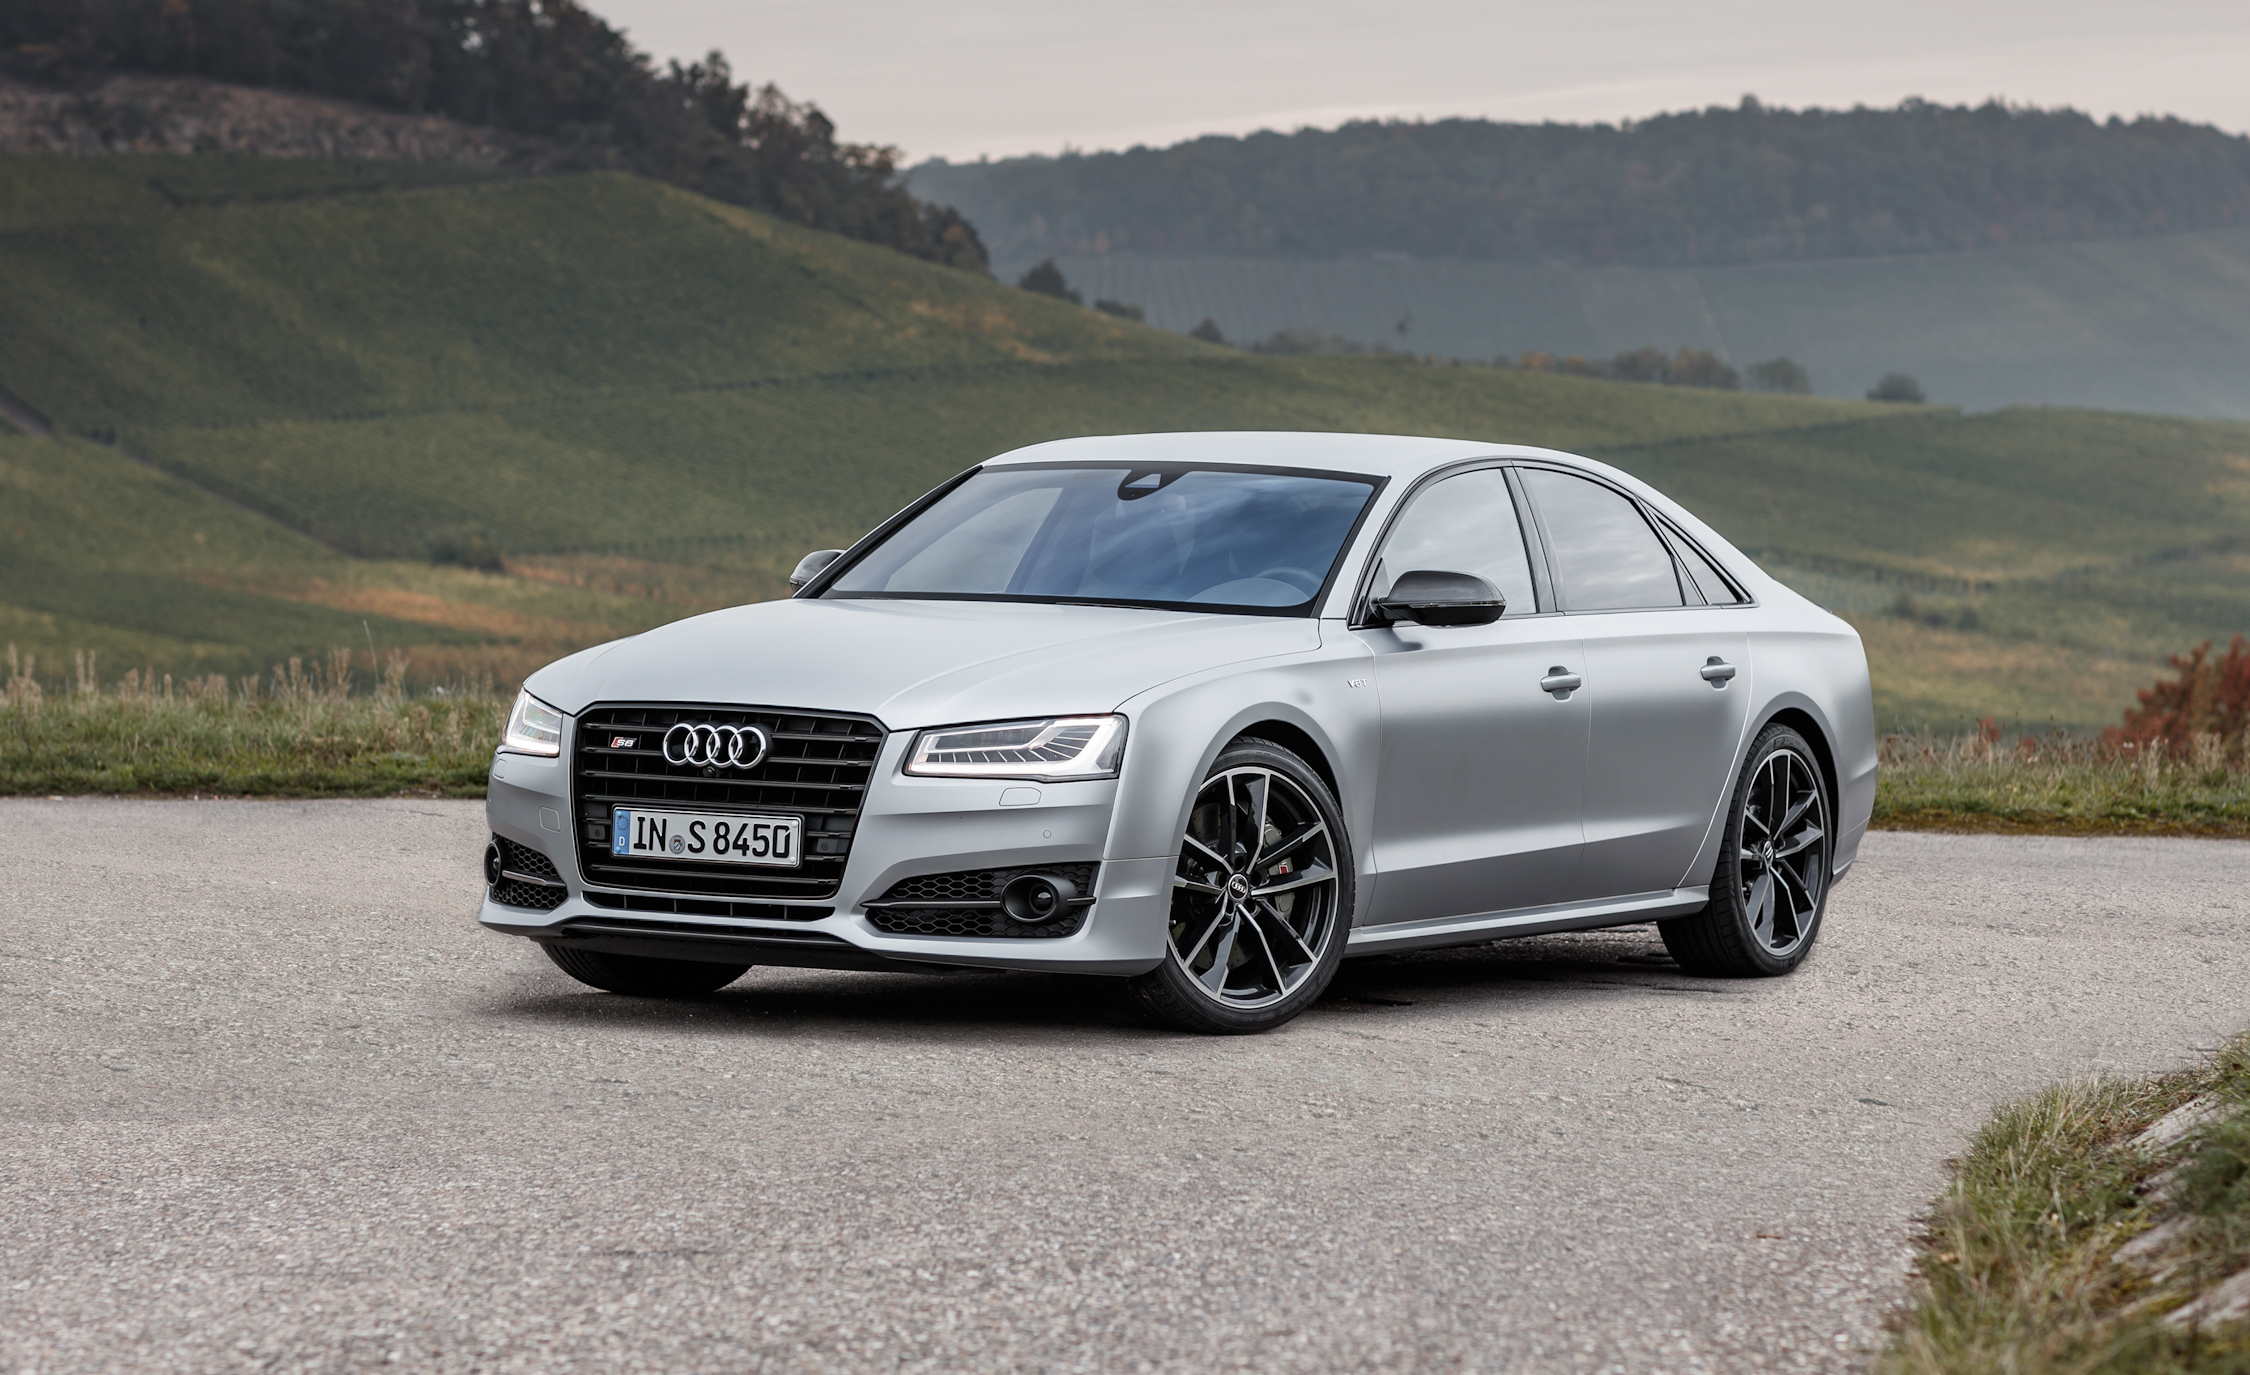 2016 audi s8 plus specifications 8315 cars performance reviews and test drive. Black Bedroom Furniture Sets. Home Design Ideas